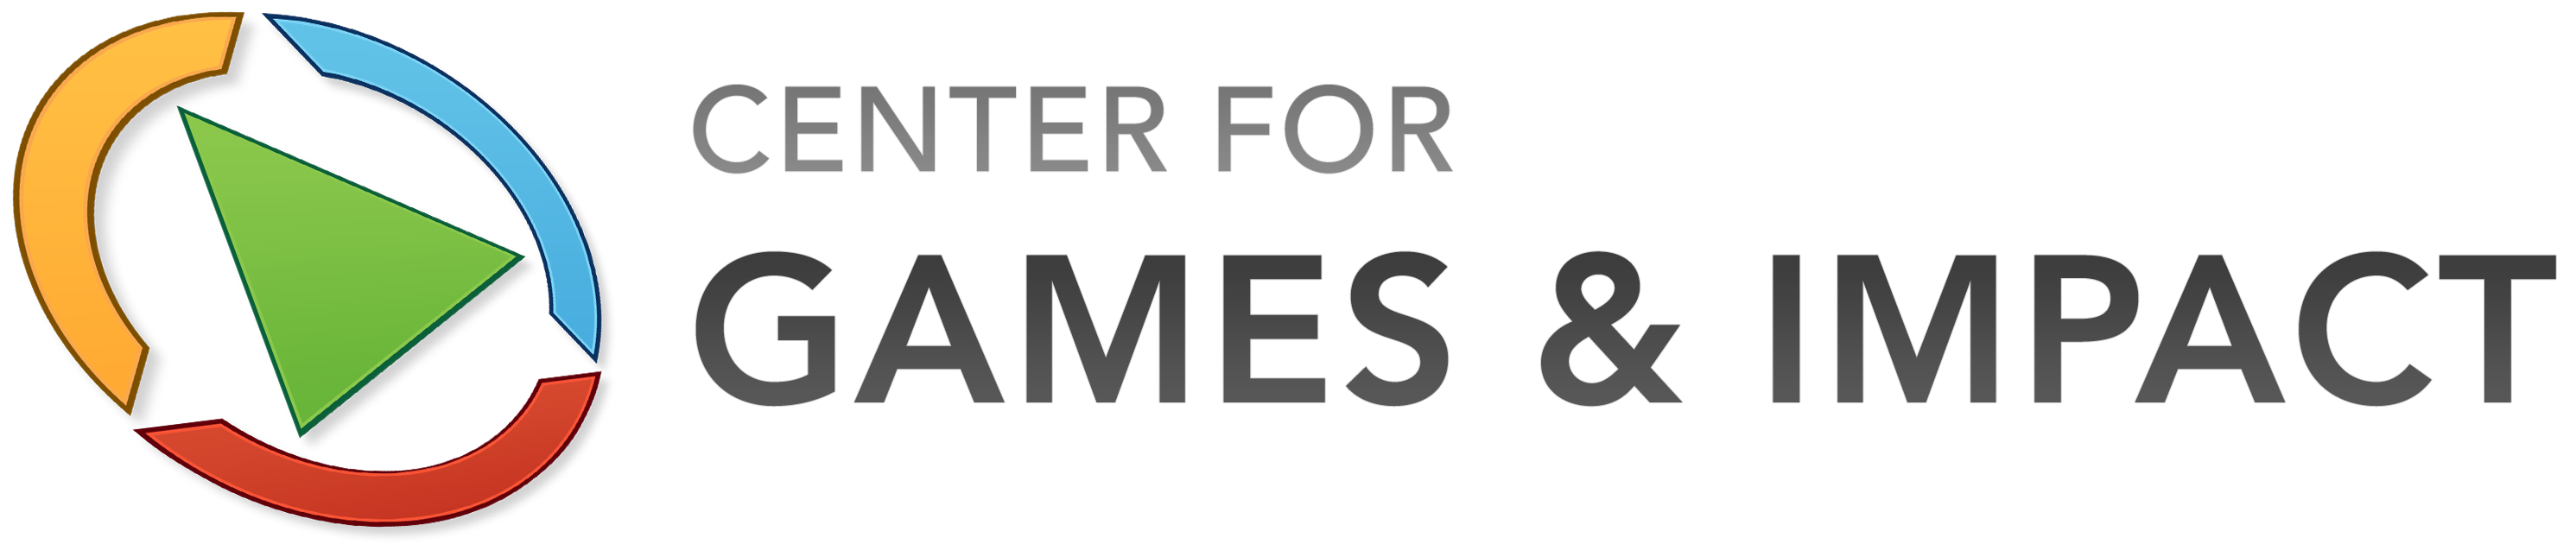 Center for Games & Impact